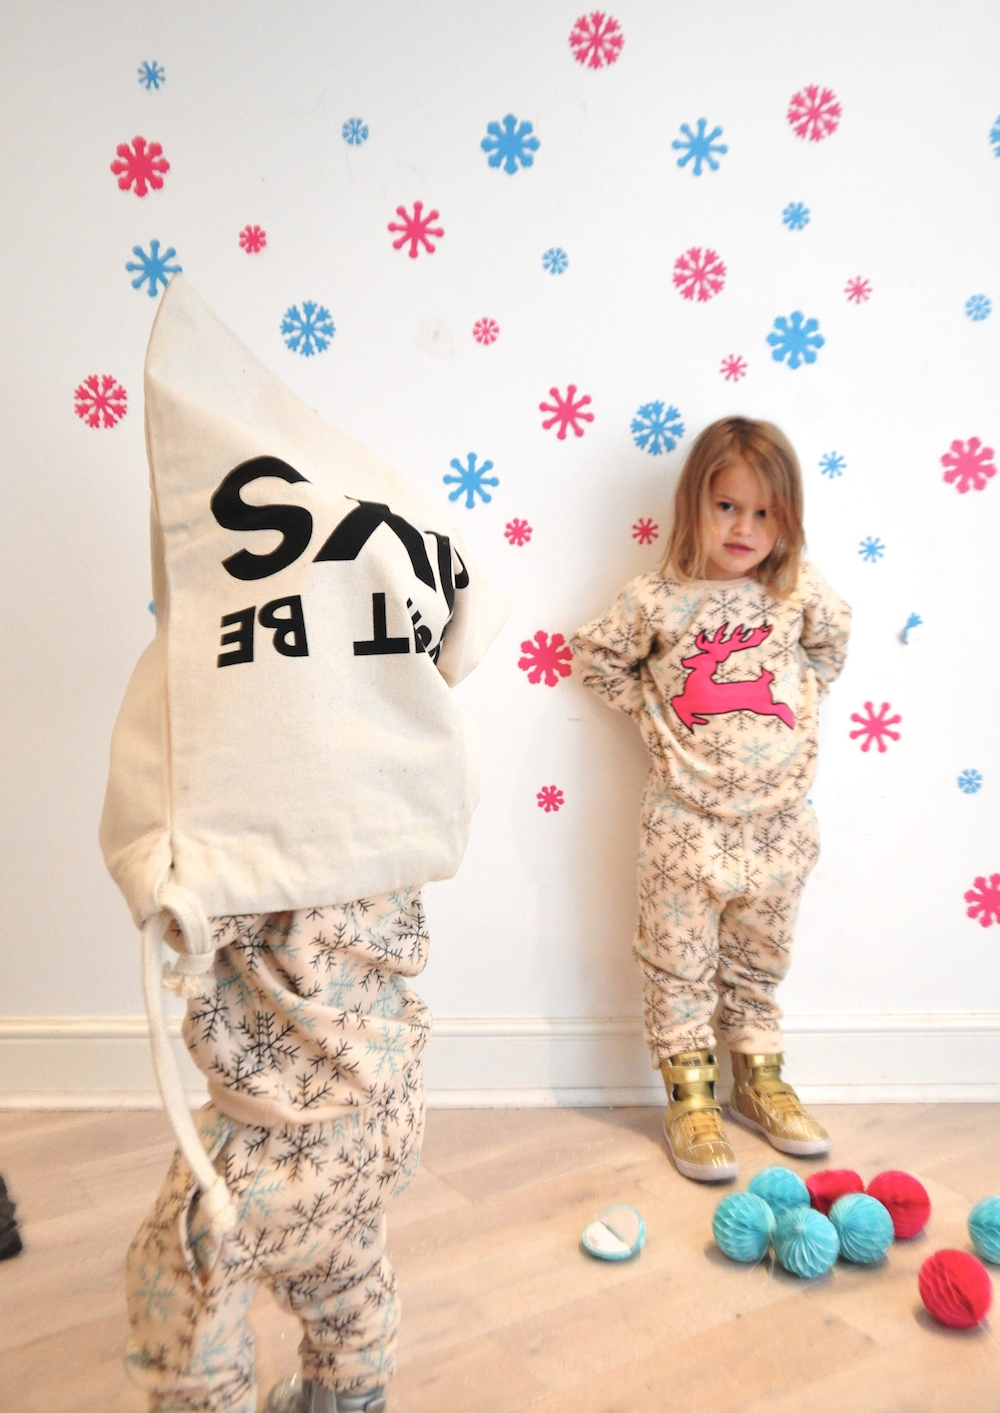 Gardner_and_the_gang_harrods_miniharrods_Christmas_tellkiddo_kidsen_22